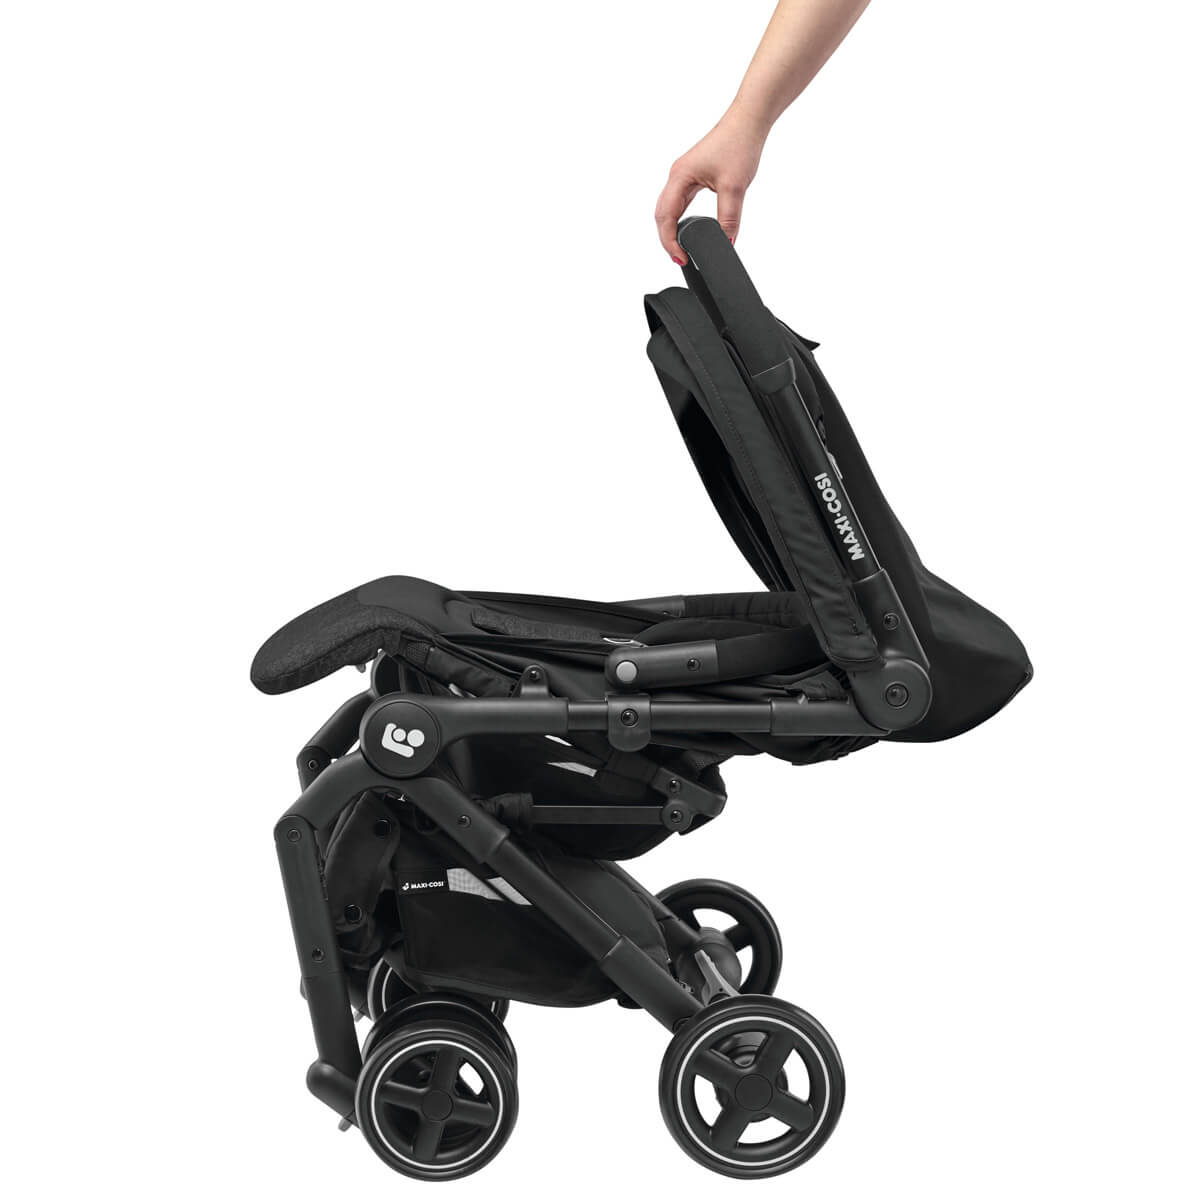 The Maxi-Cosi Lara strollers can be folded with 1 button push.